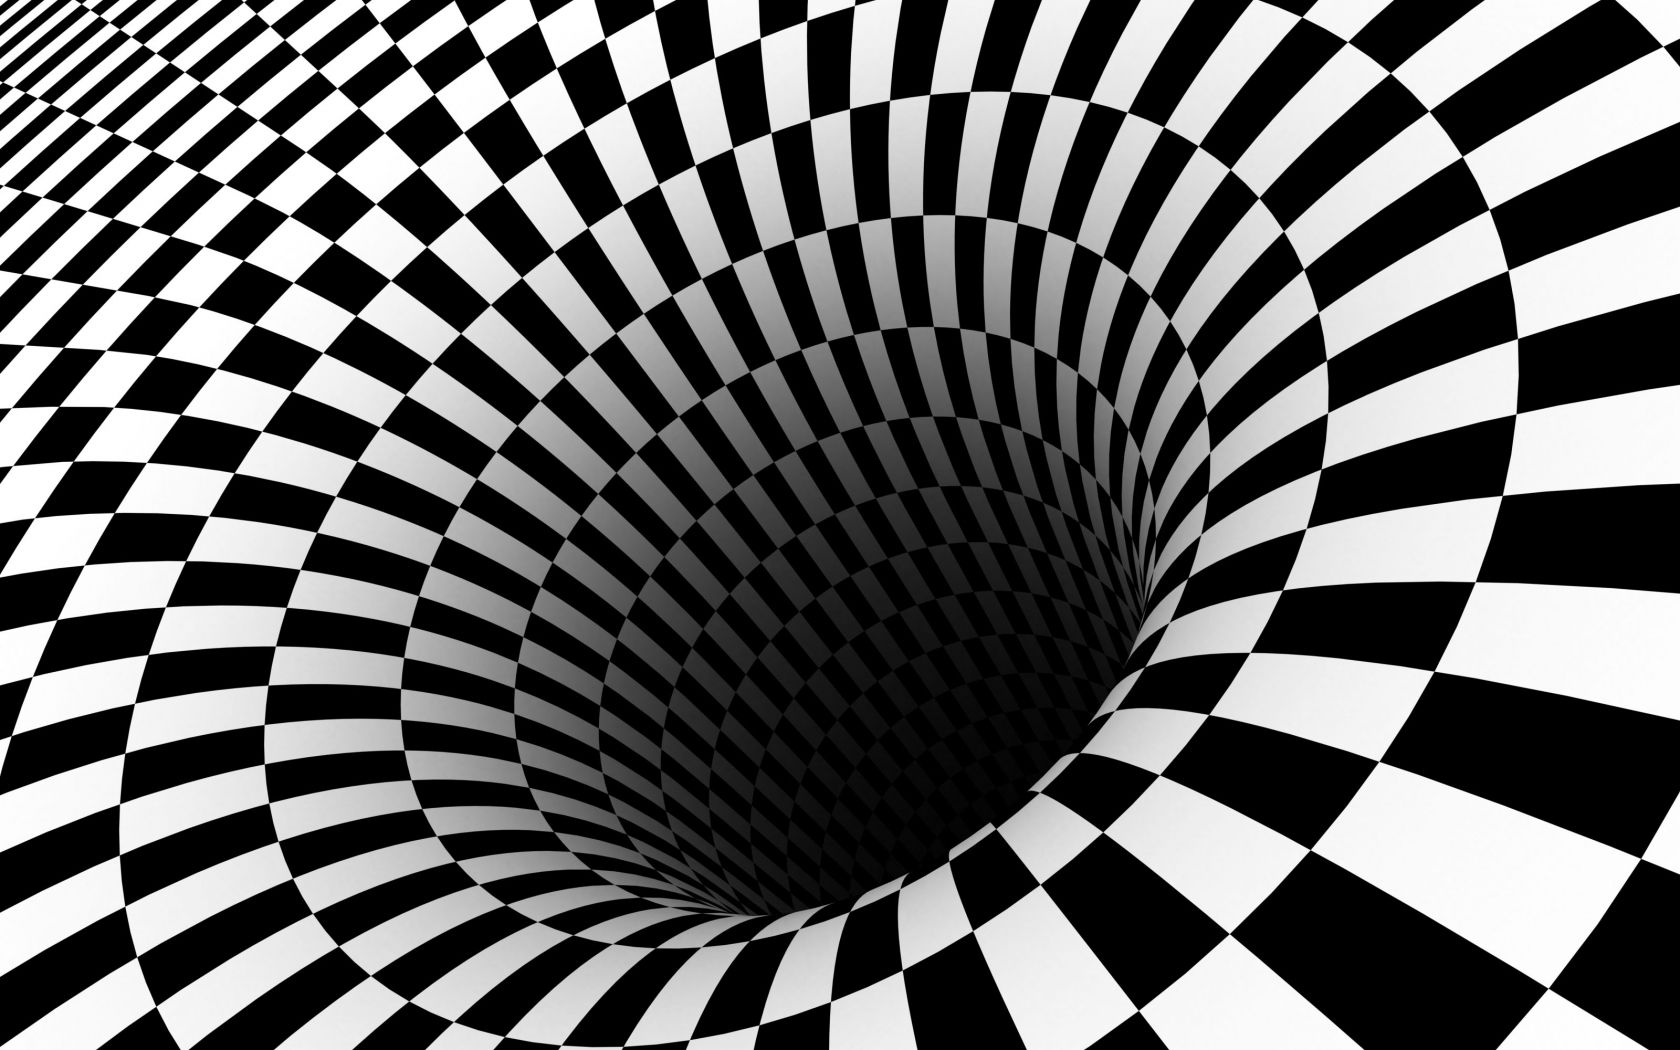 Moving Optical Illusions Black An